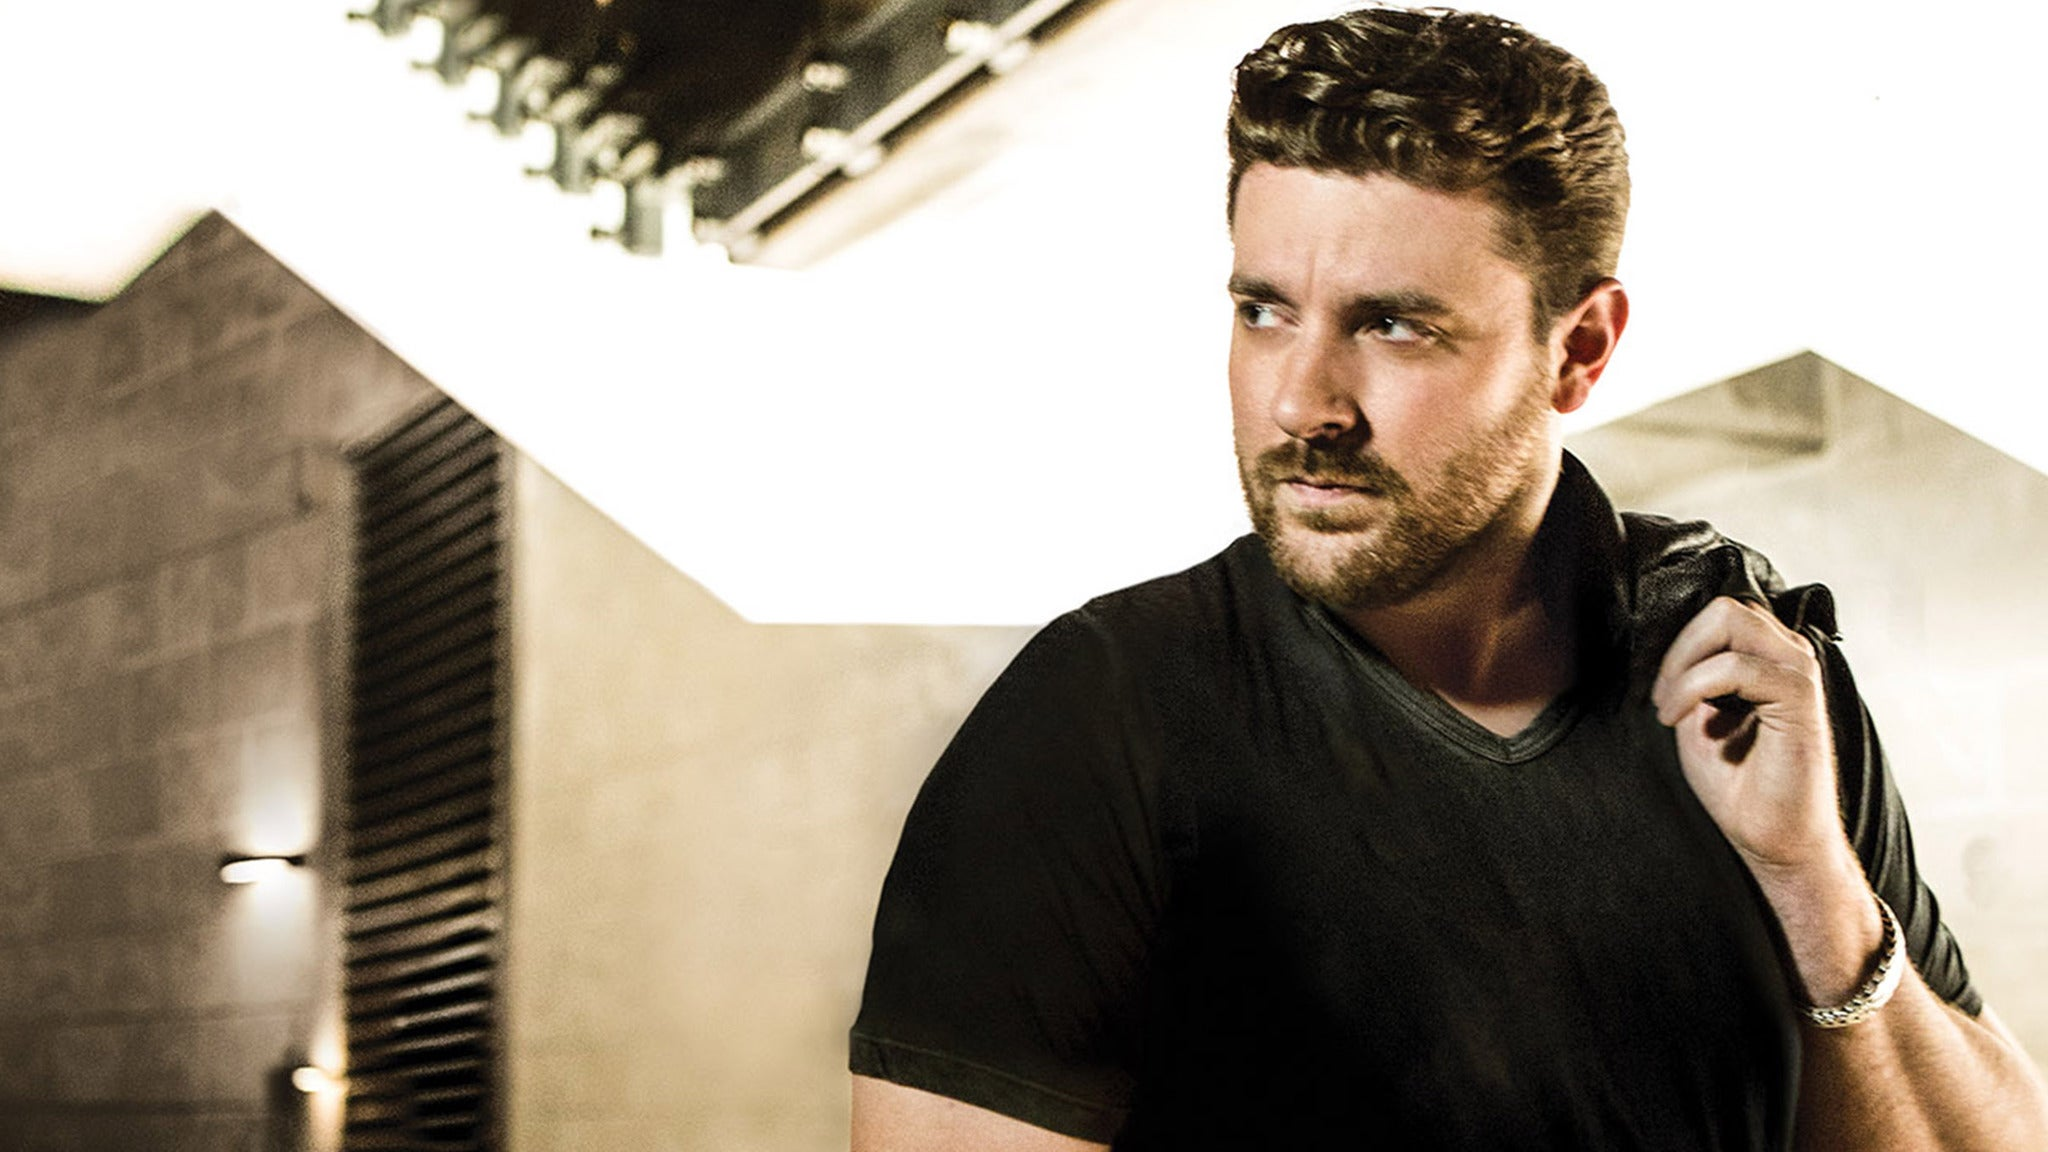 Chris Young at iWireless Center